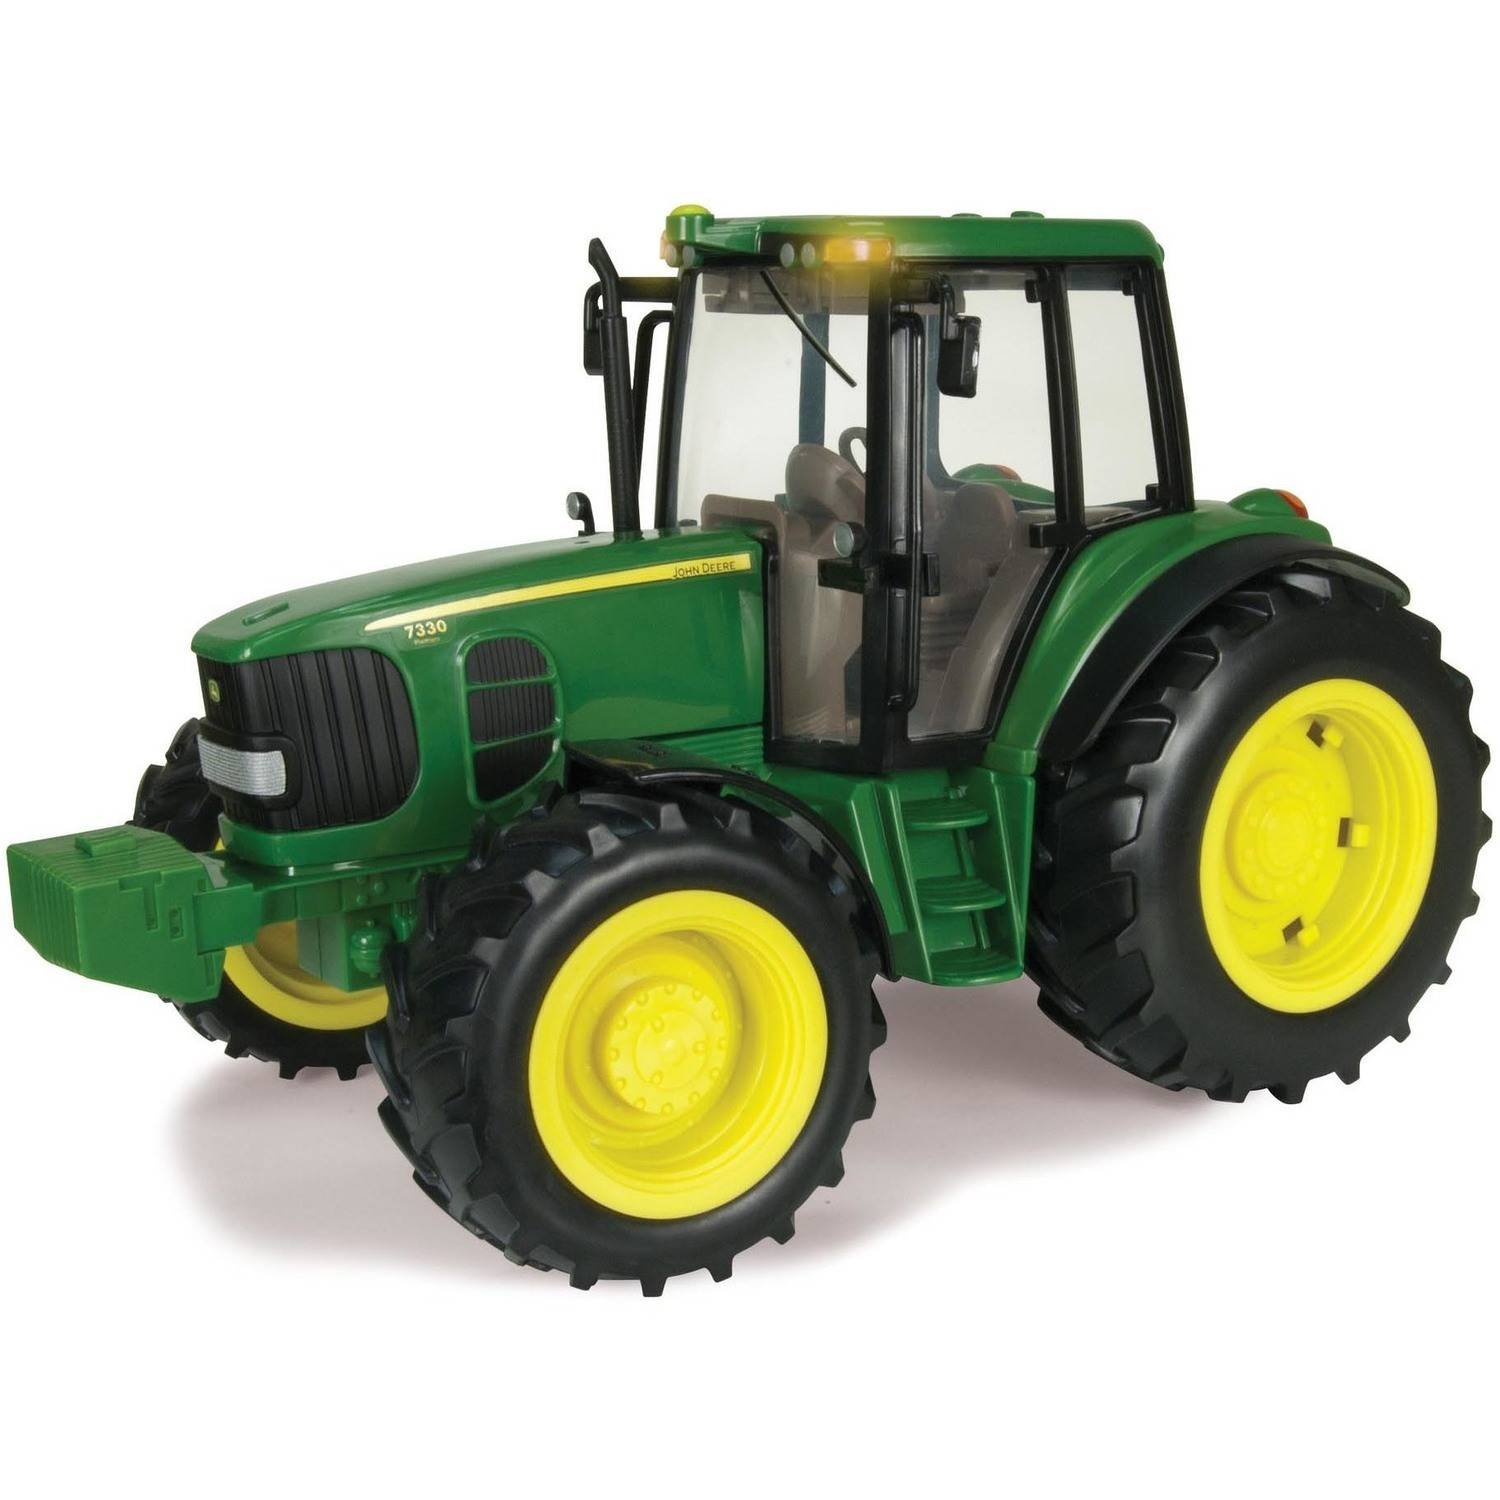 John Deere Big Farm Lights and Sounds Tractor